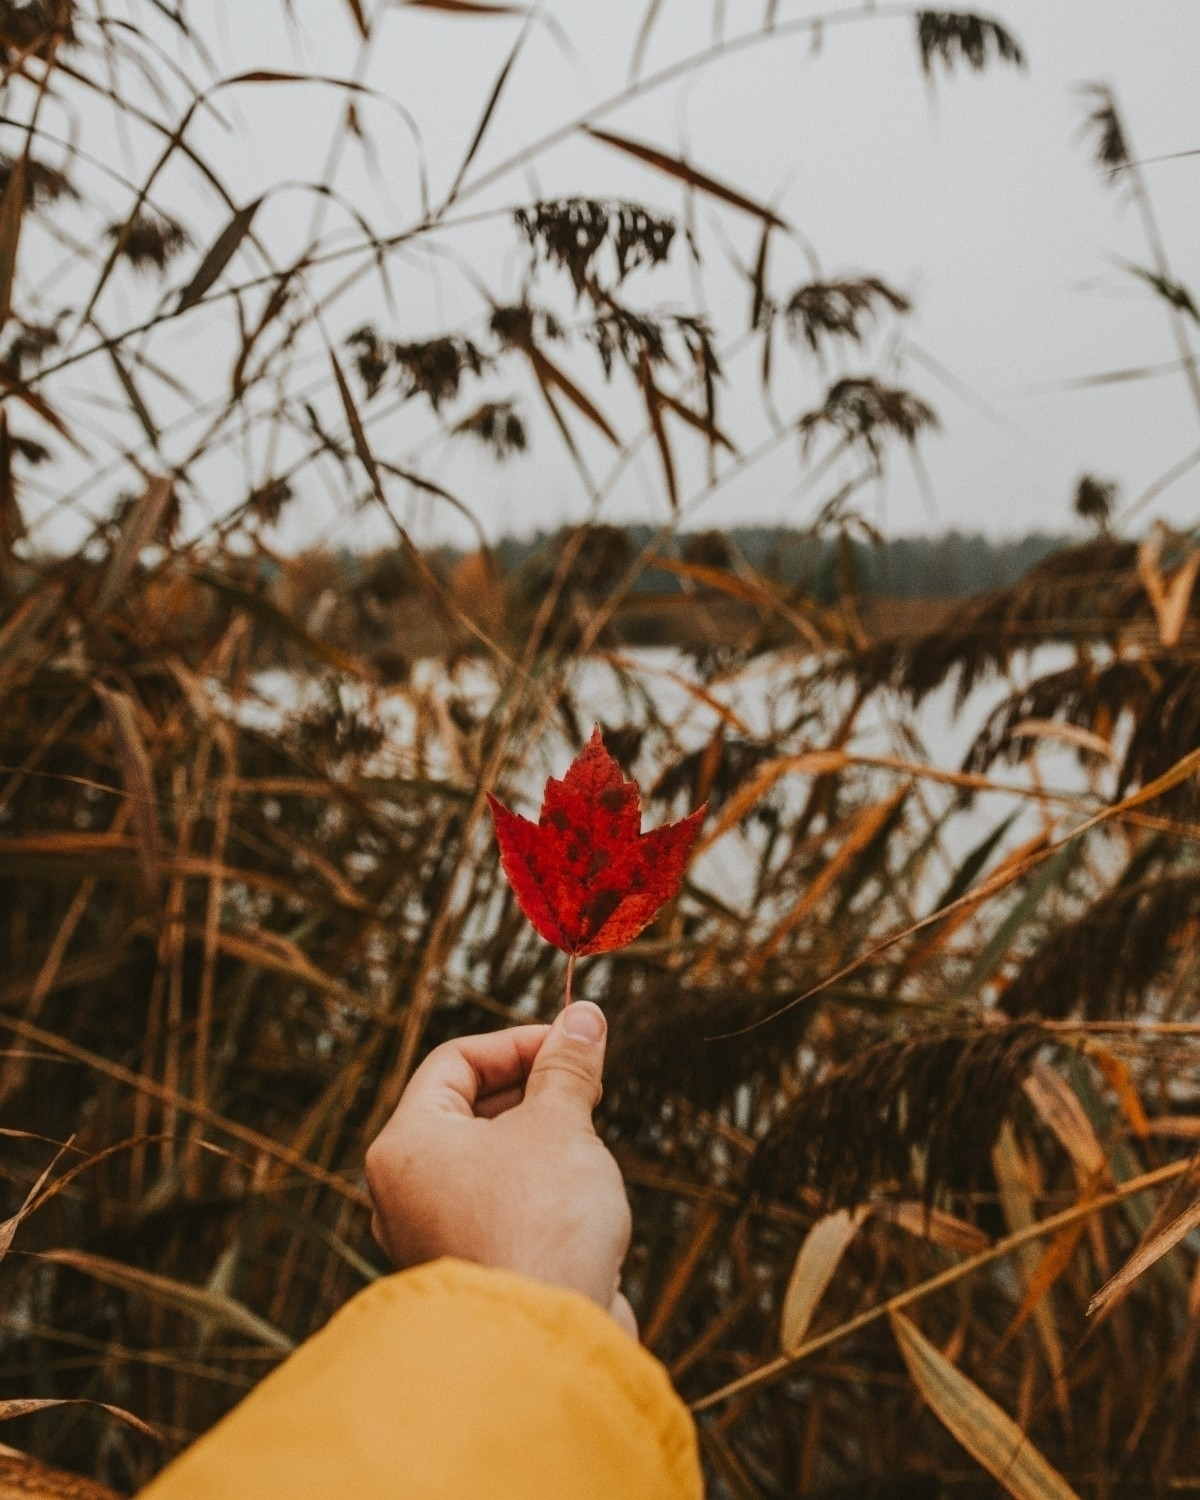 cliché autumn photo - ello, ellophoto - charles_collin | ello